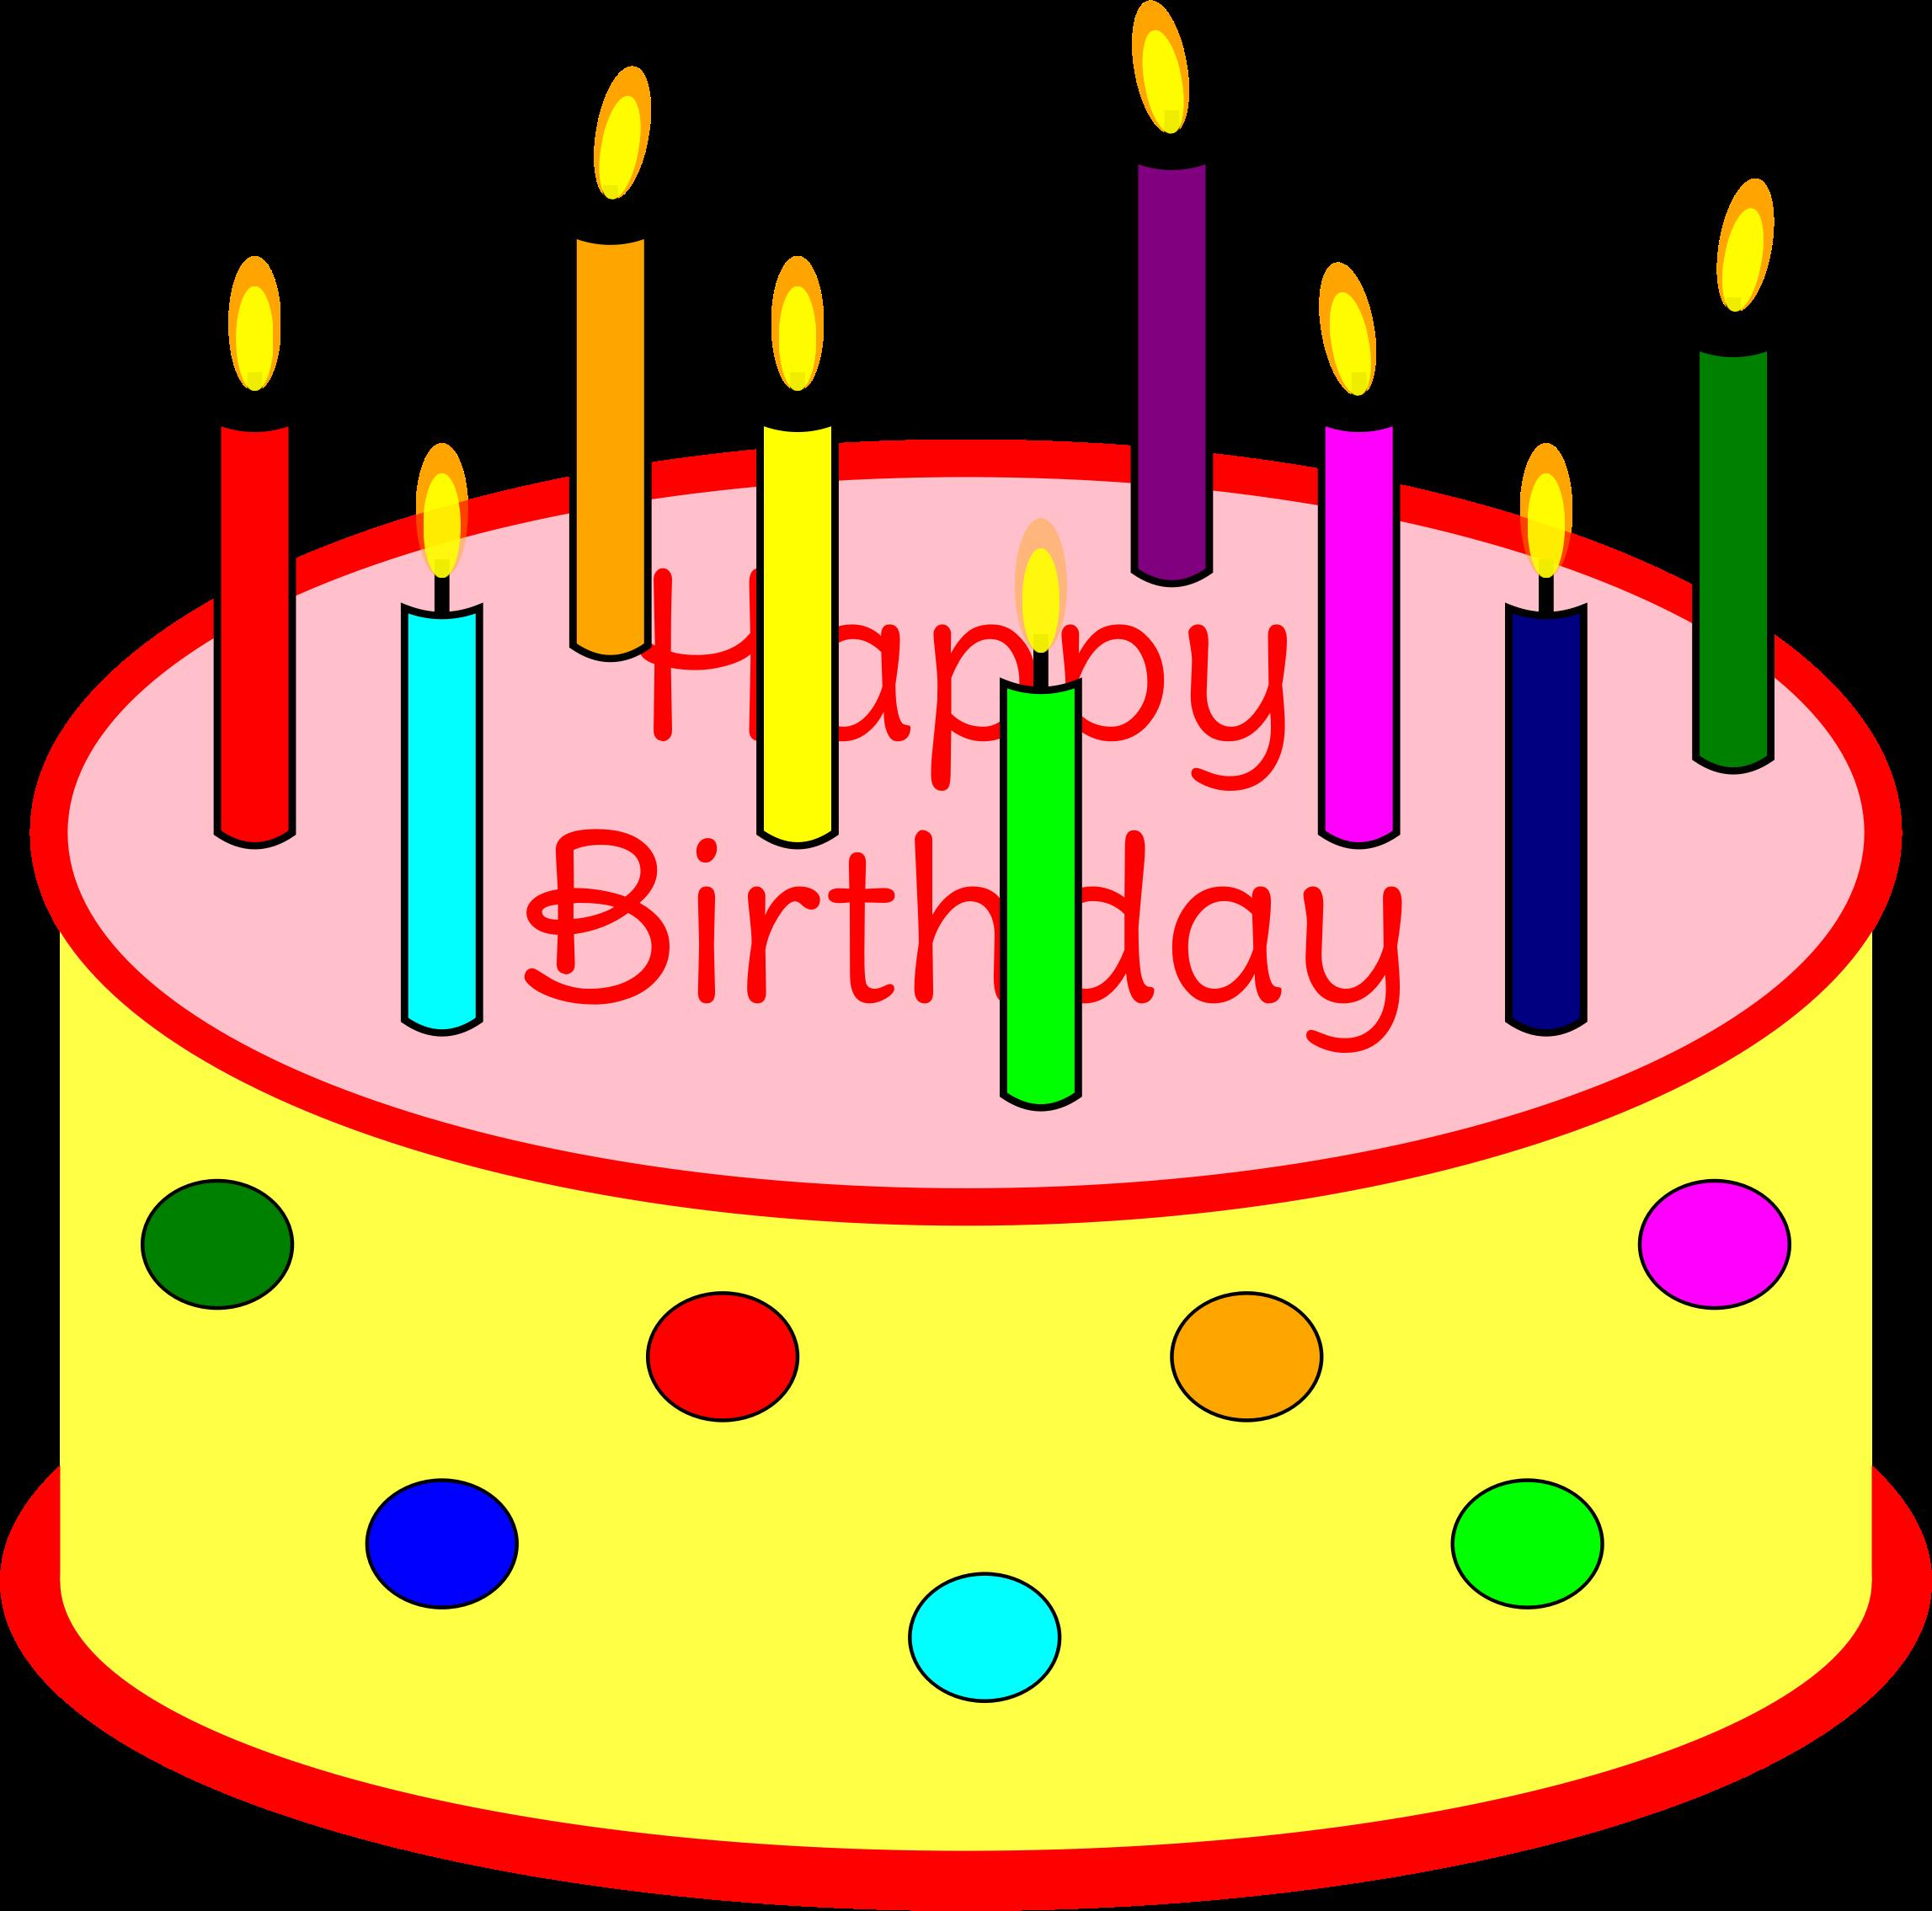 pictures of birthday candles clipart ; bdaycake